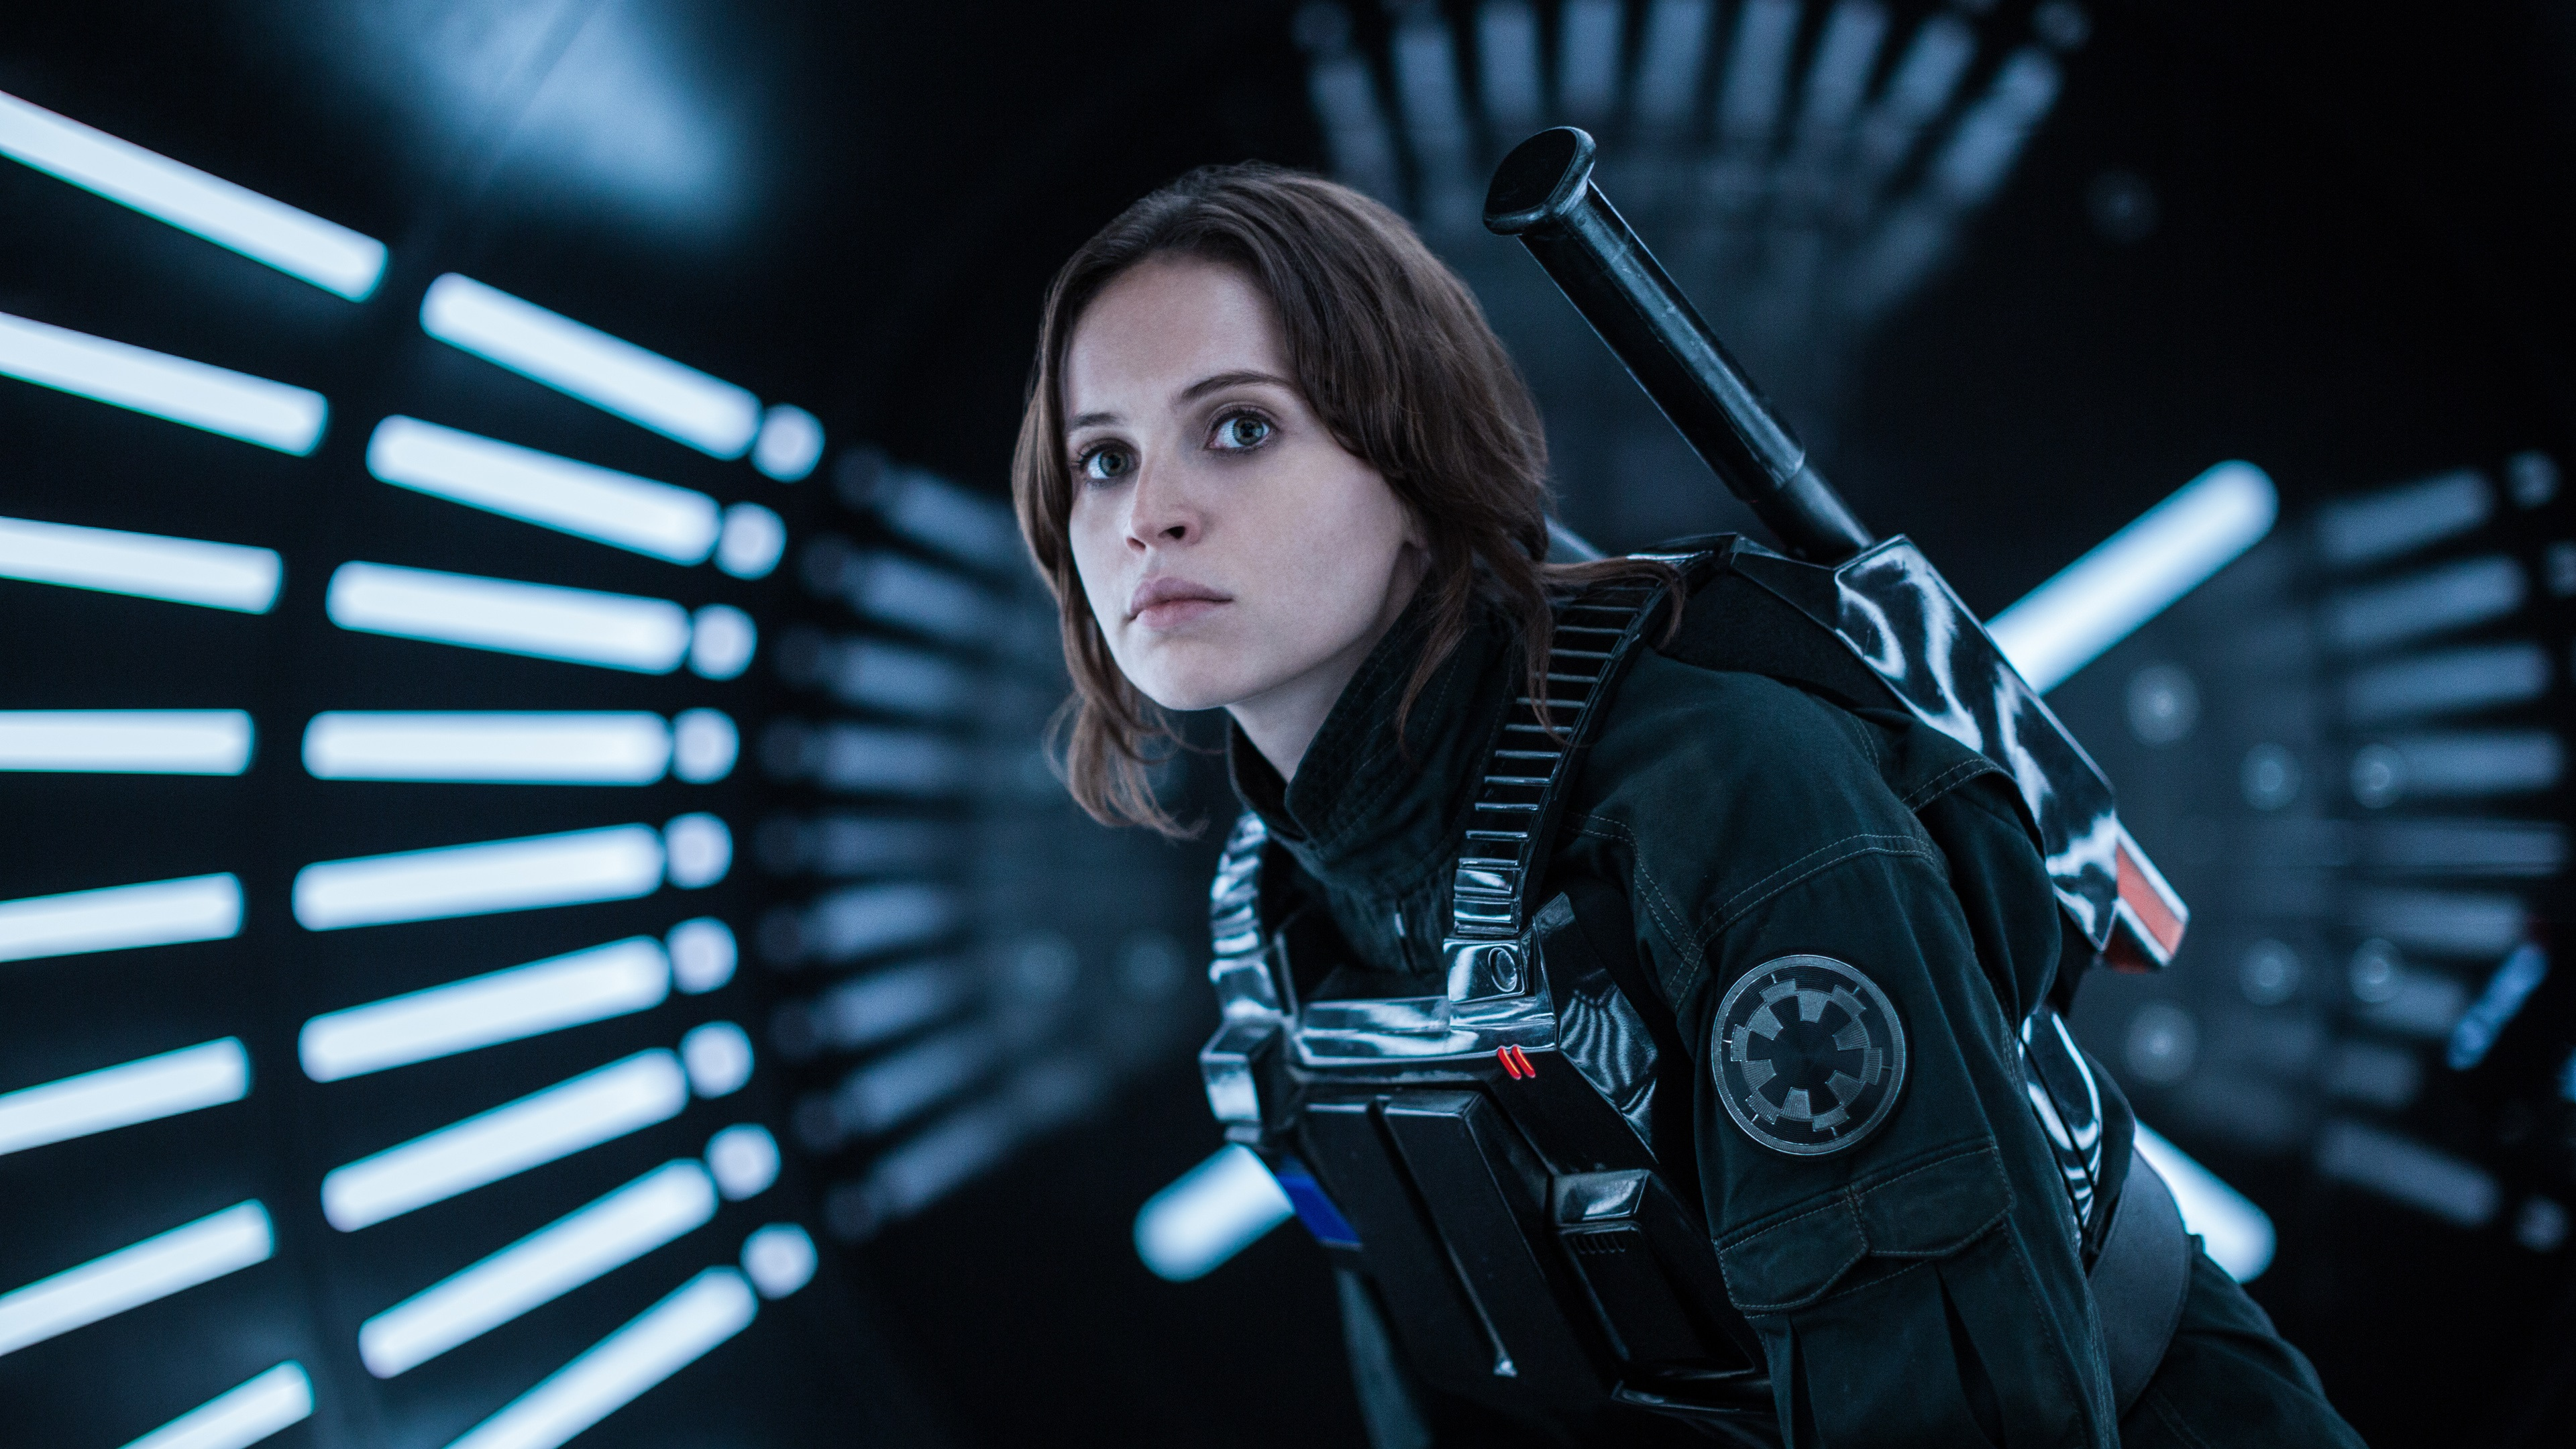 Wallpaper Rogue One A Star Wars Story Felicity Jones 3840x2160 Uhd 4k Picture Image